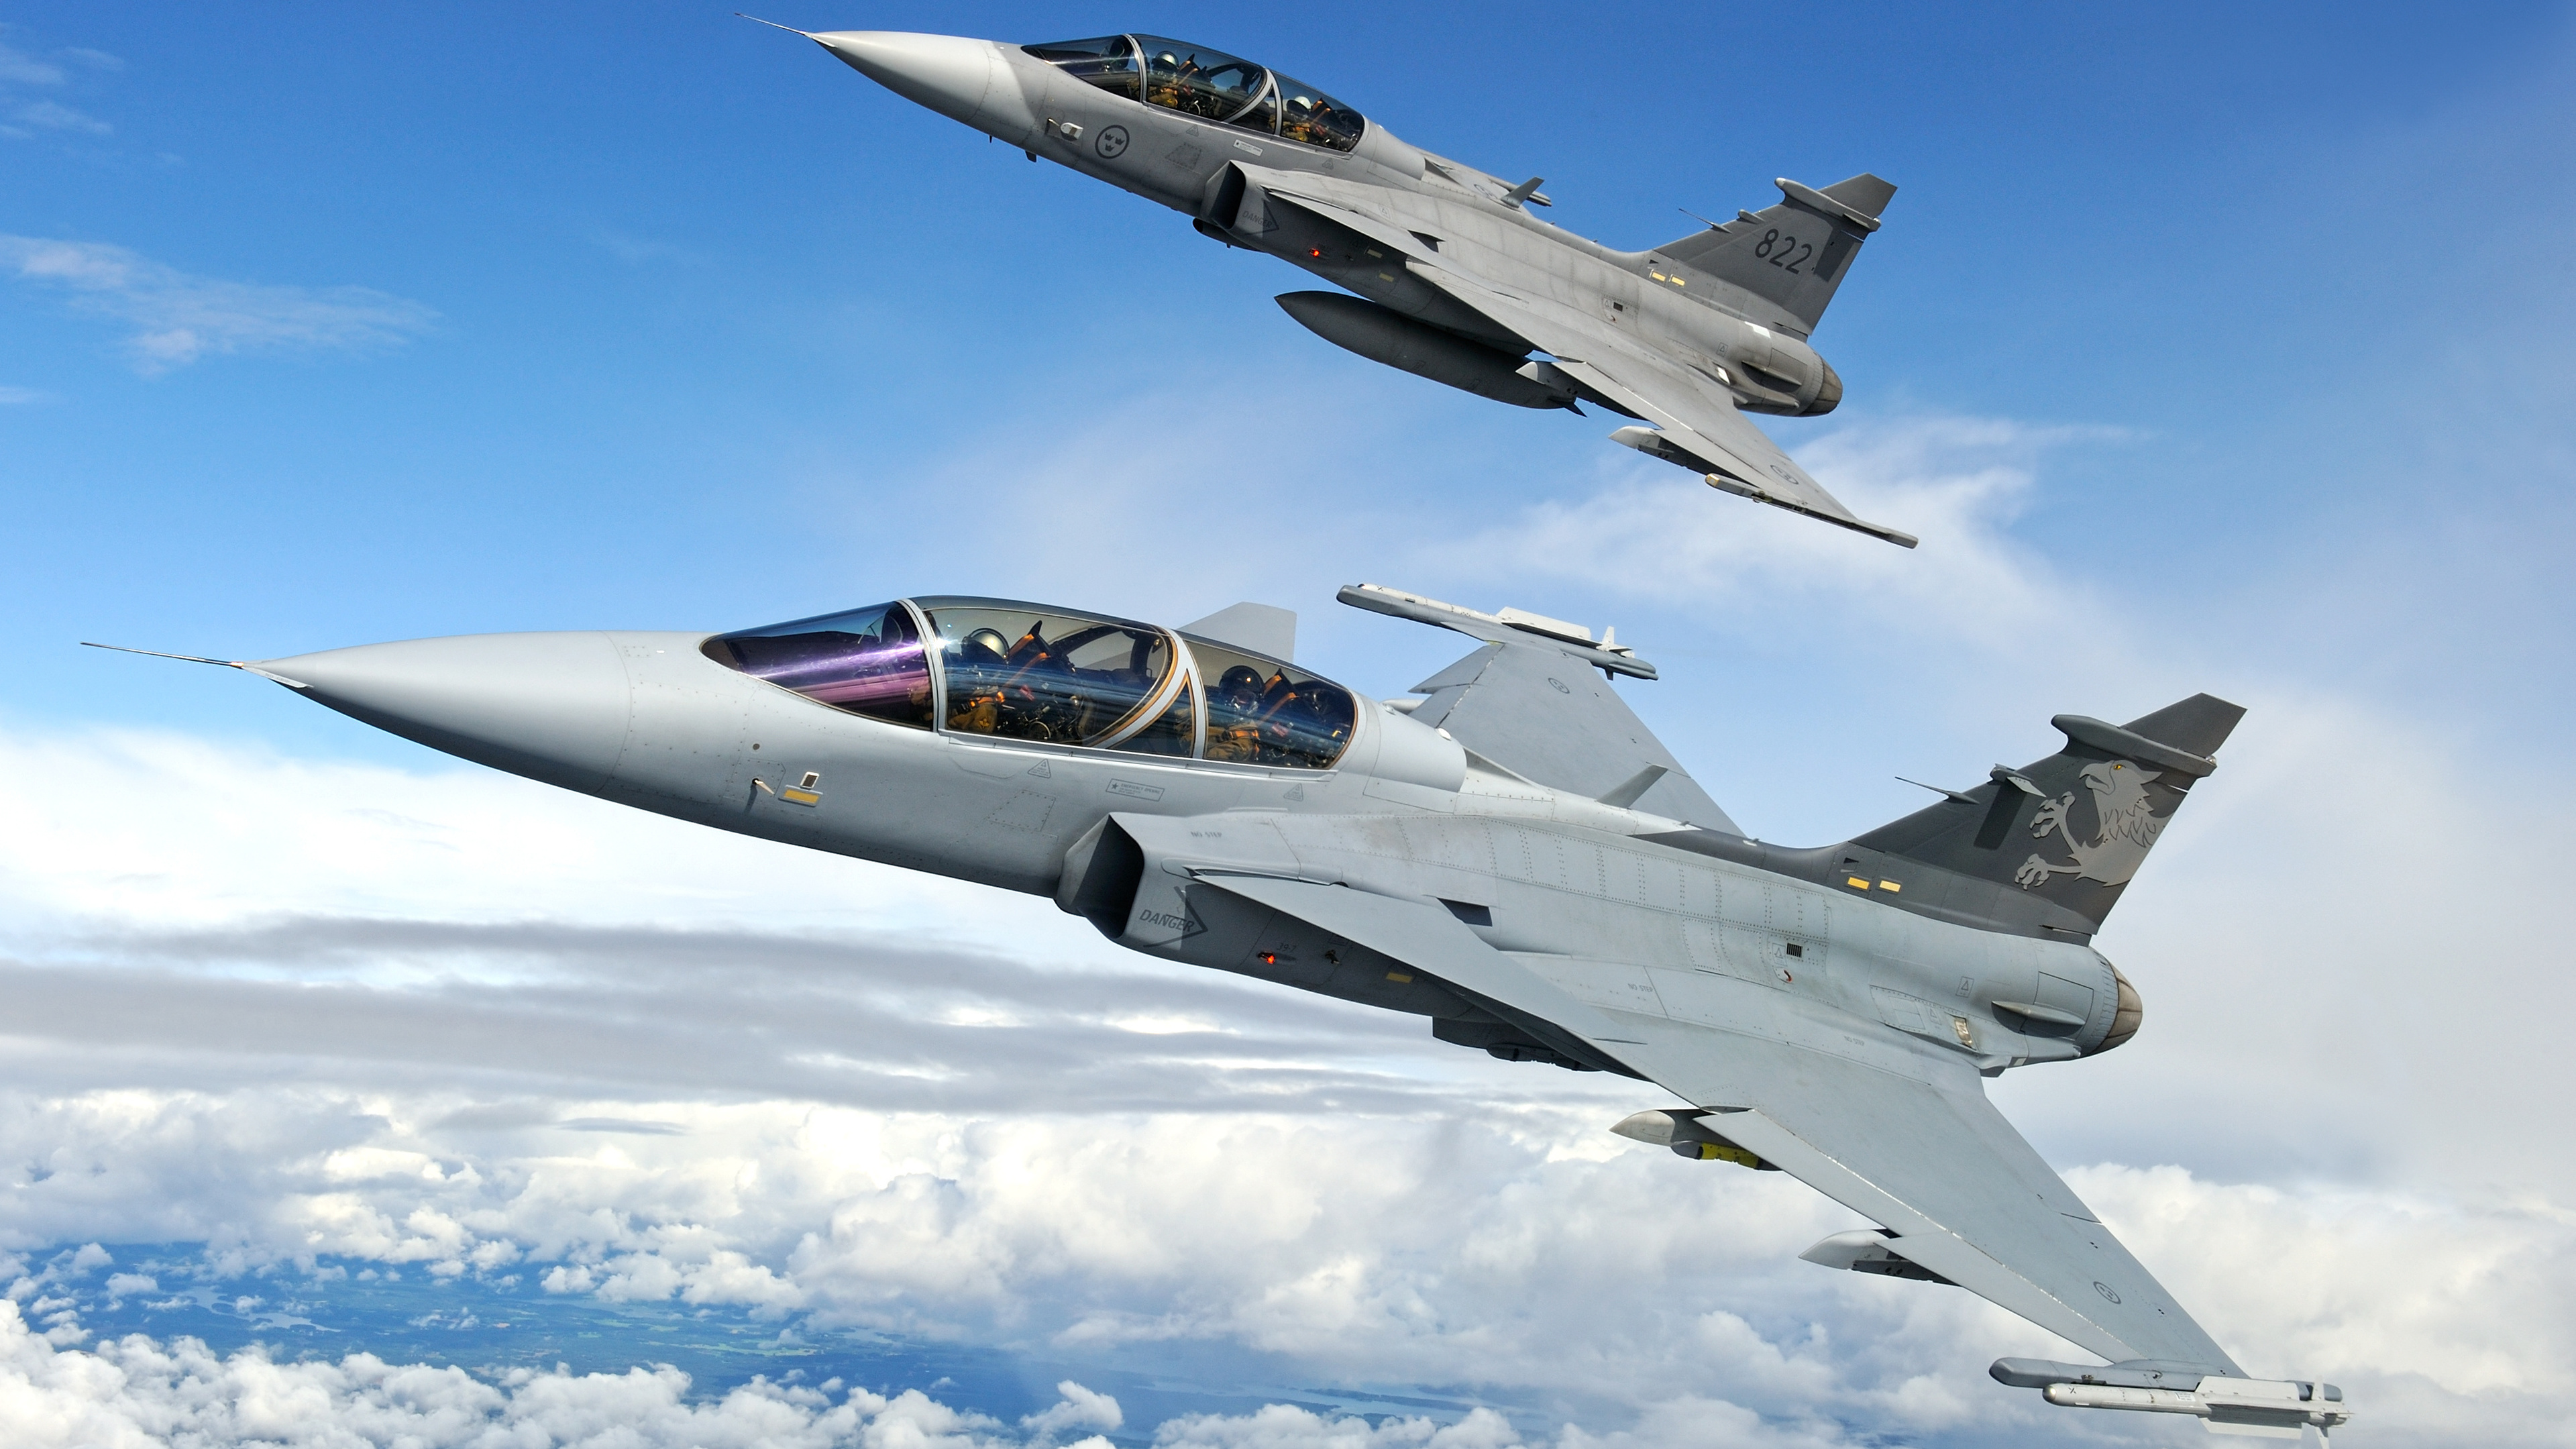 american fighter jets 4k 1547938049 - American Fighter Jets 4k - sky wallpapers, planes wallpapers, airplane wallpapers